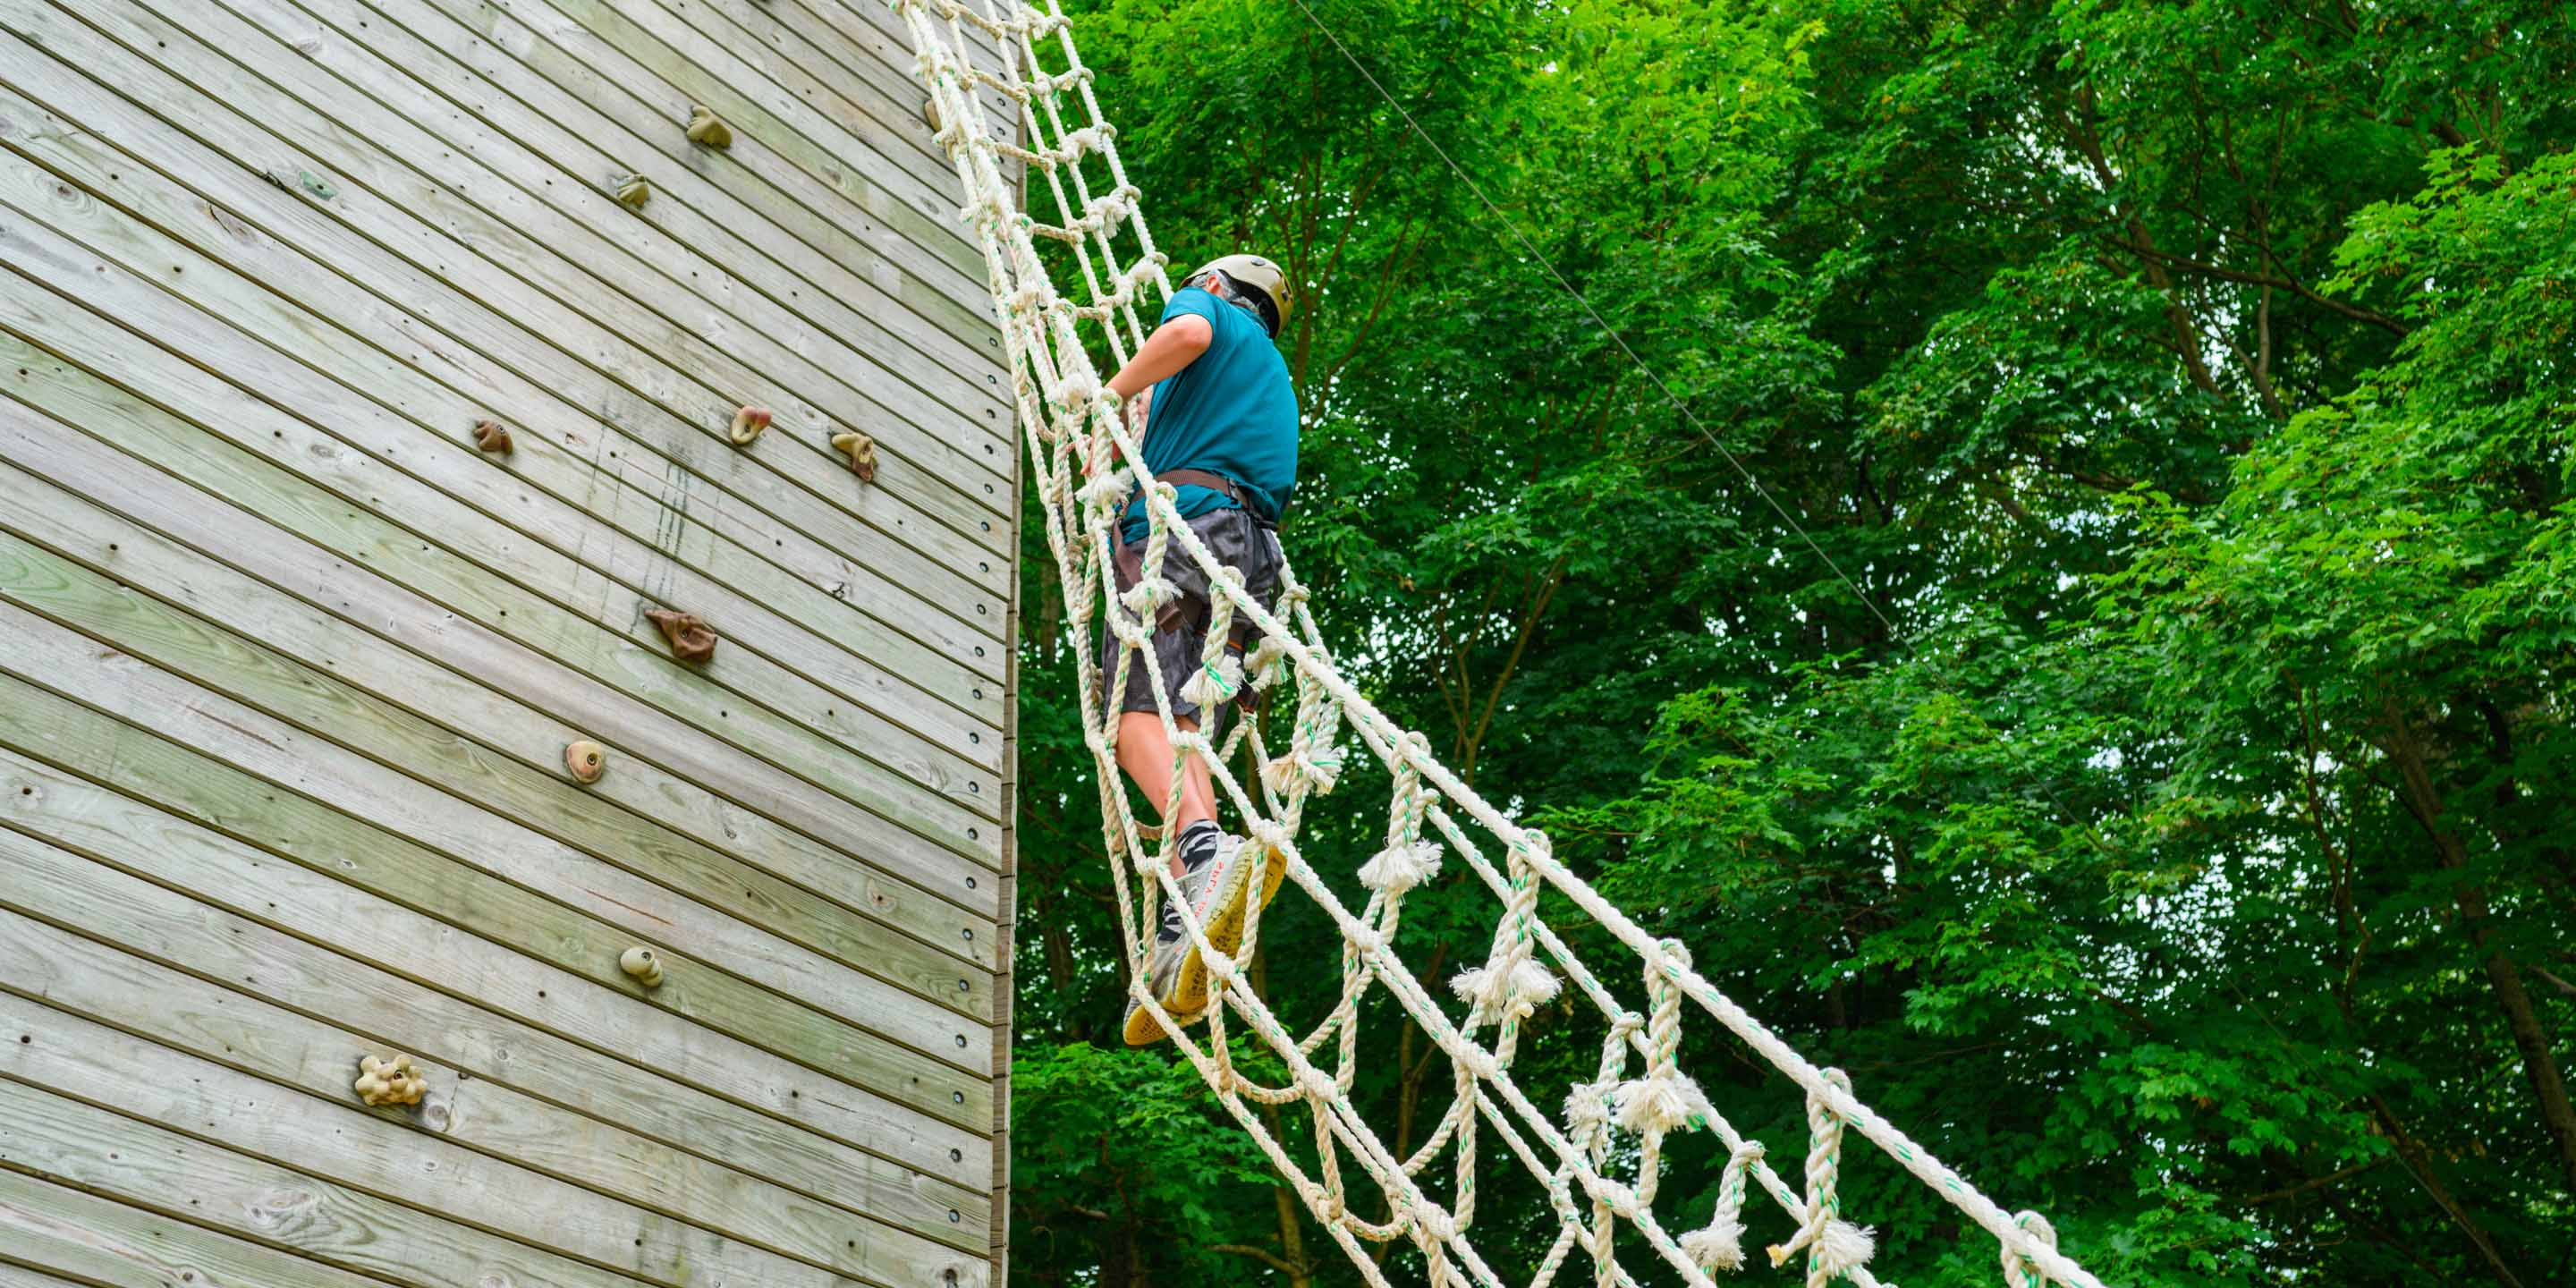 Camper going up ropes course